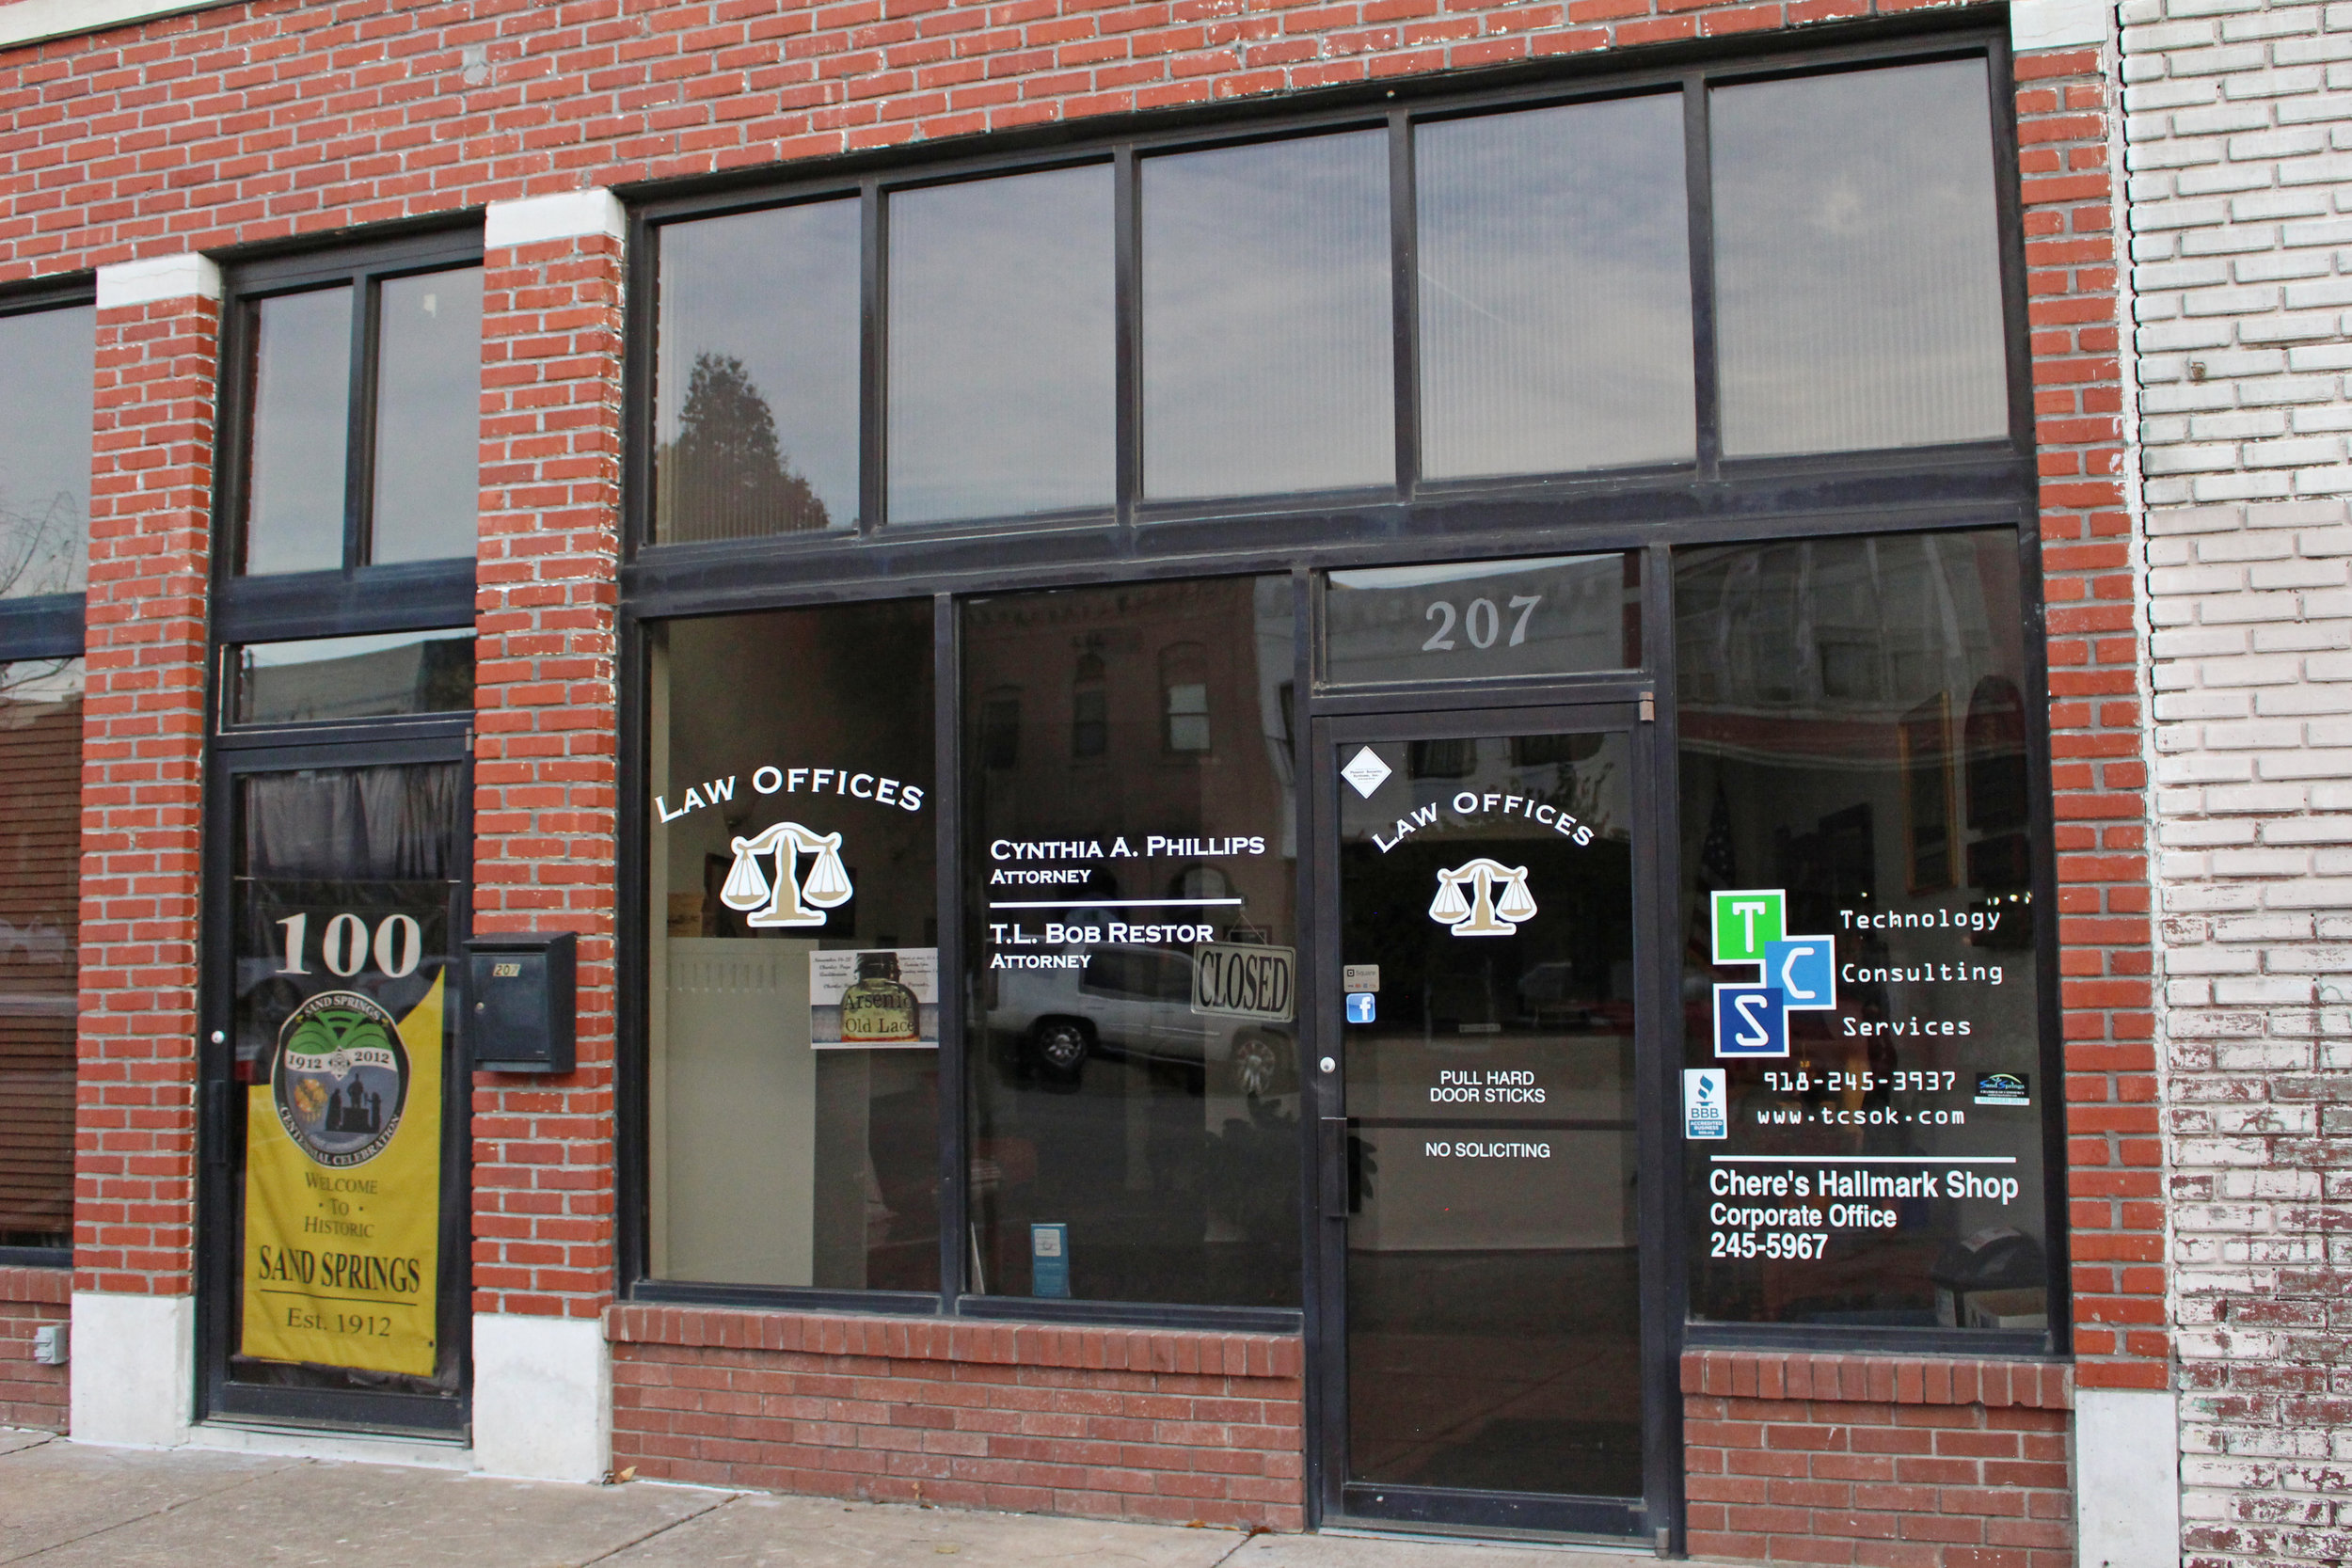 technology consulting services - downtown 207 north main street